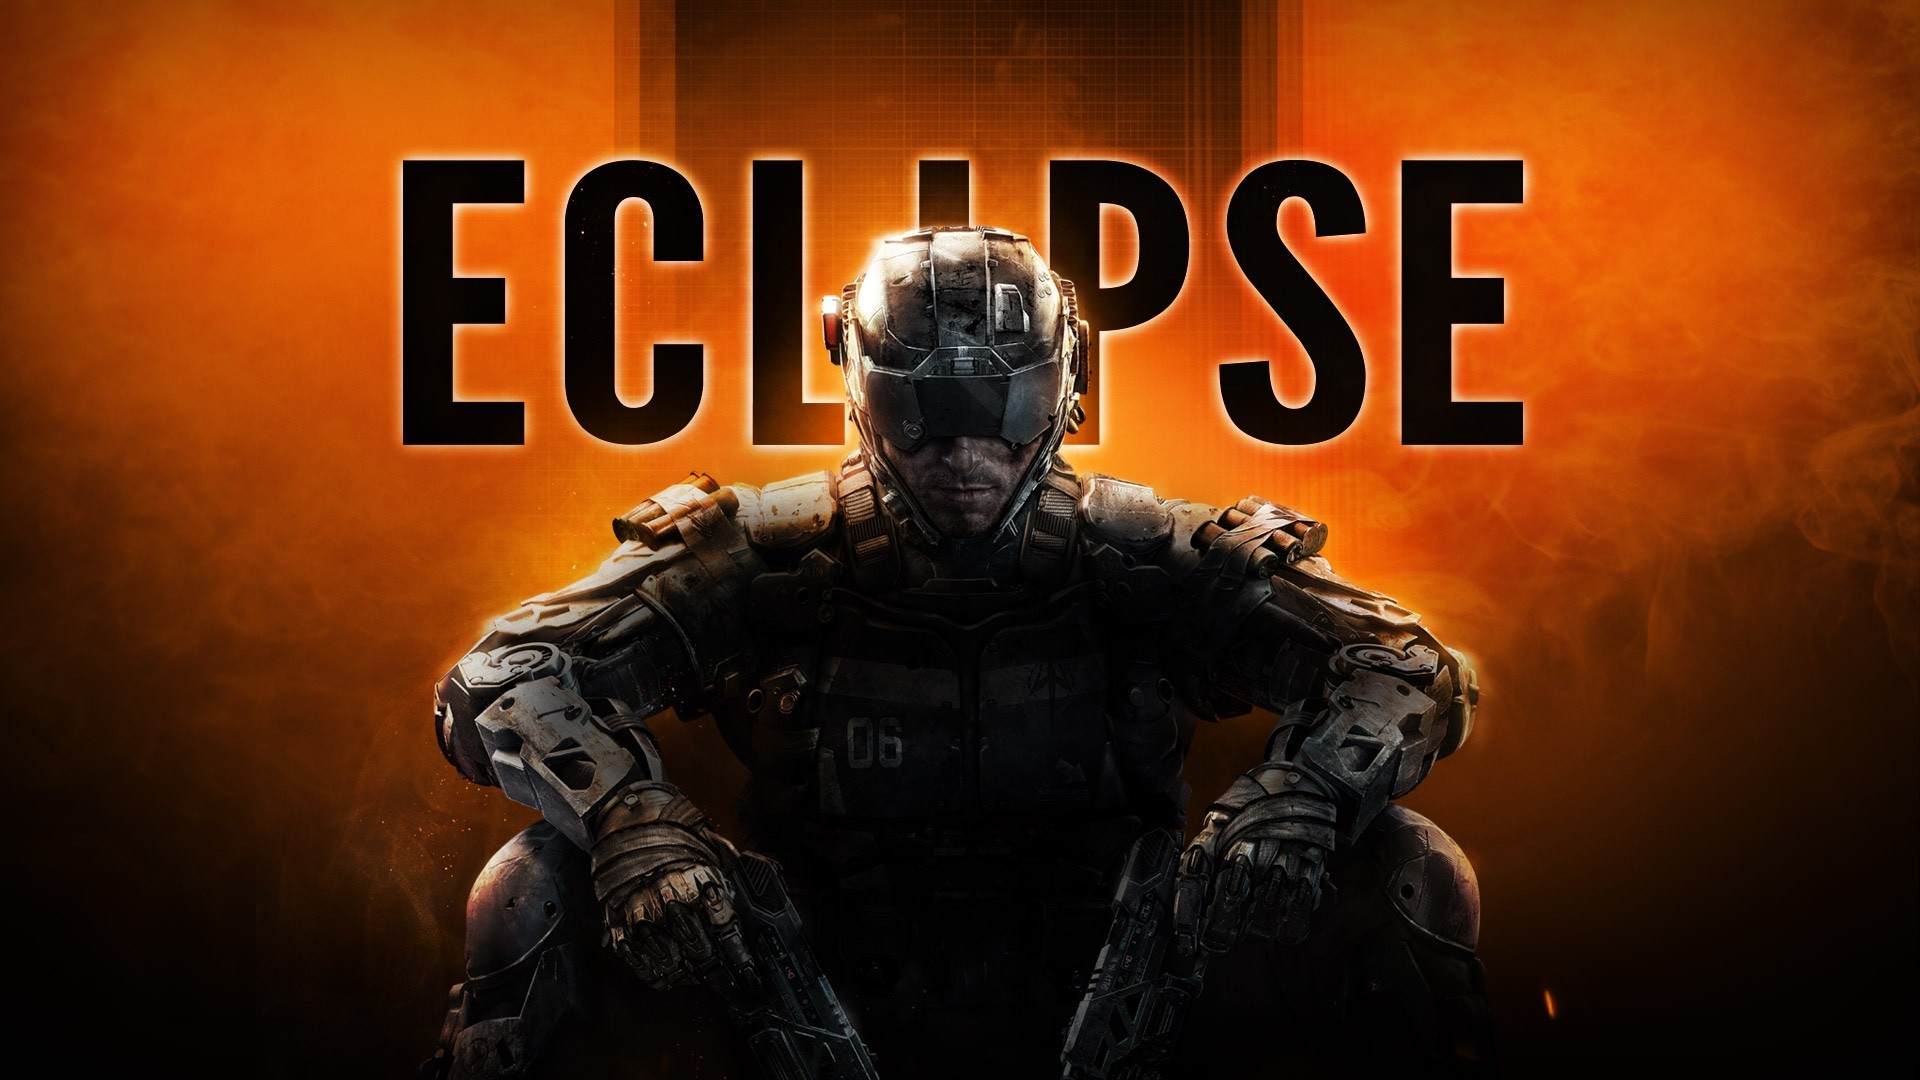 Black Ops 3 Wallpapers (84+ images)